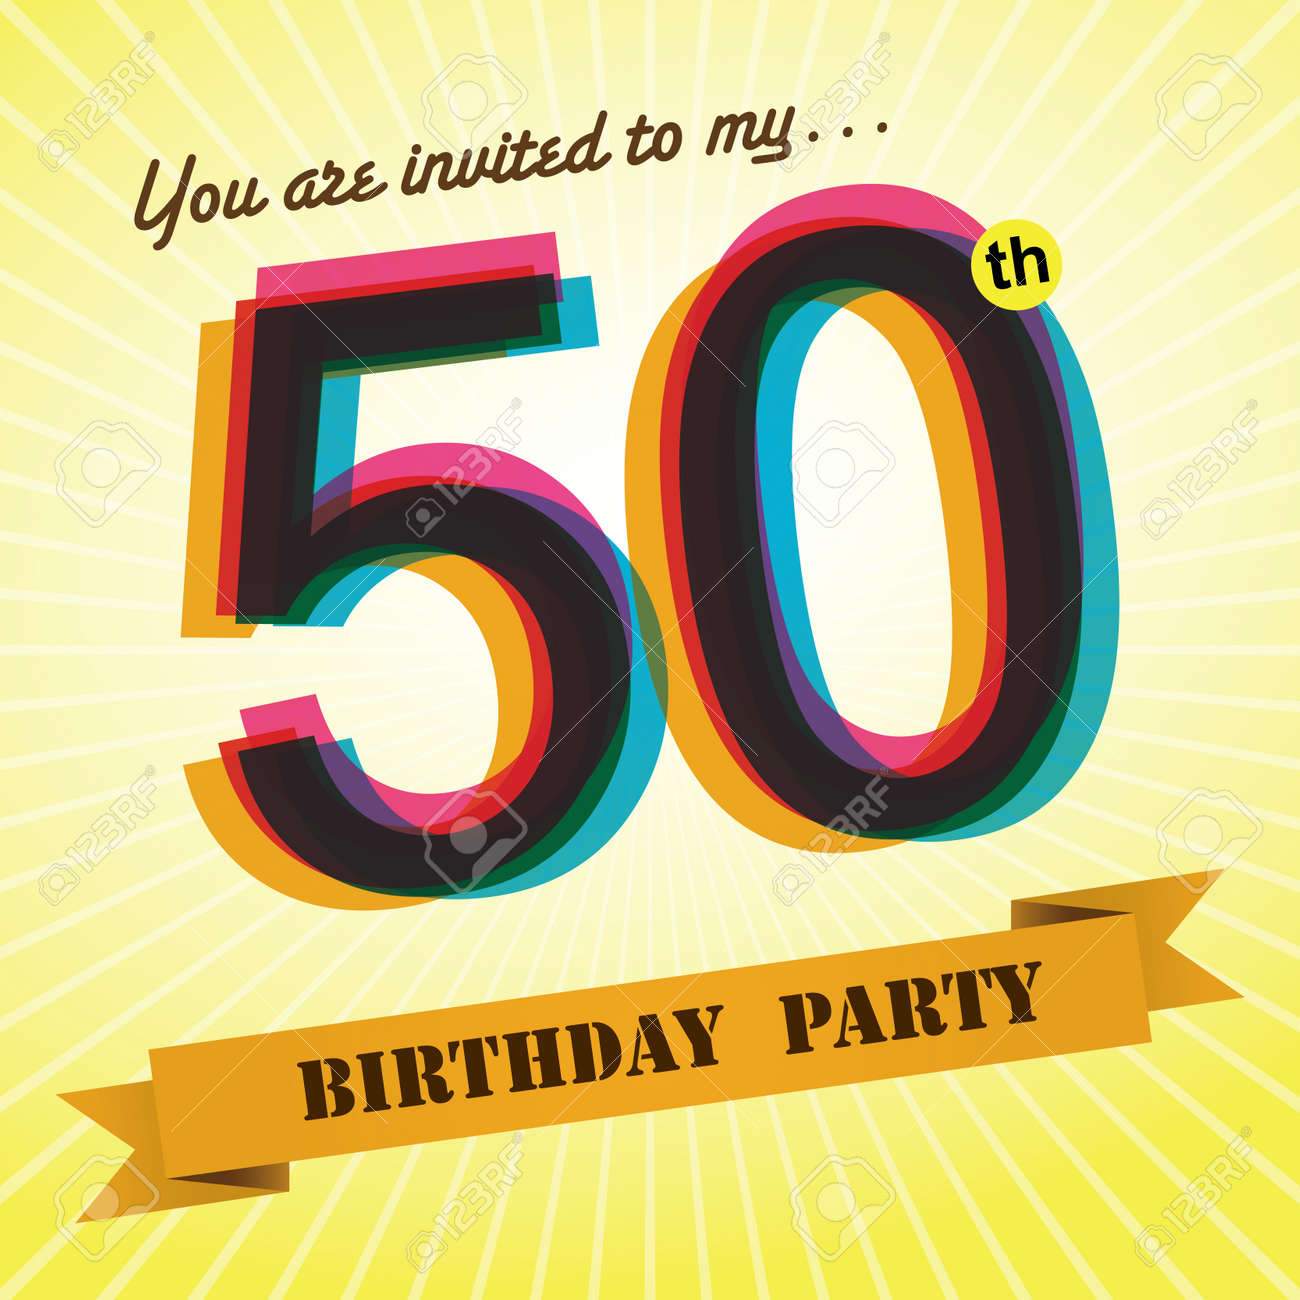 50th Birthday Party Invite Template Design Retro Style